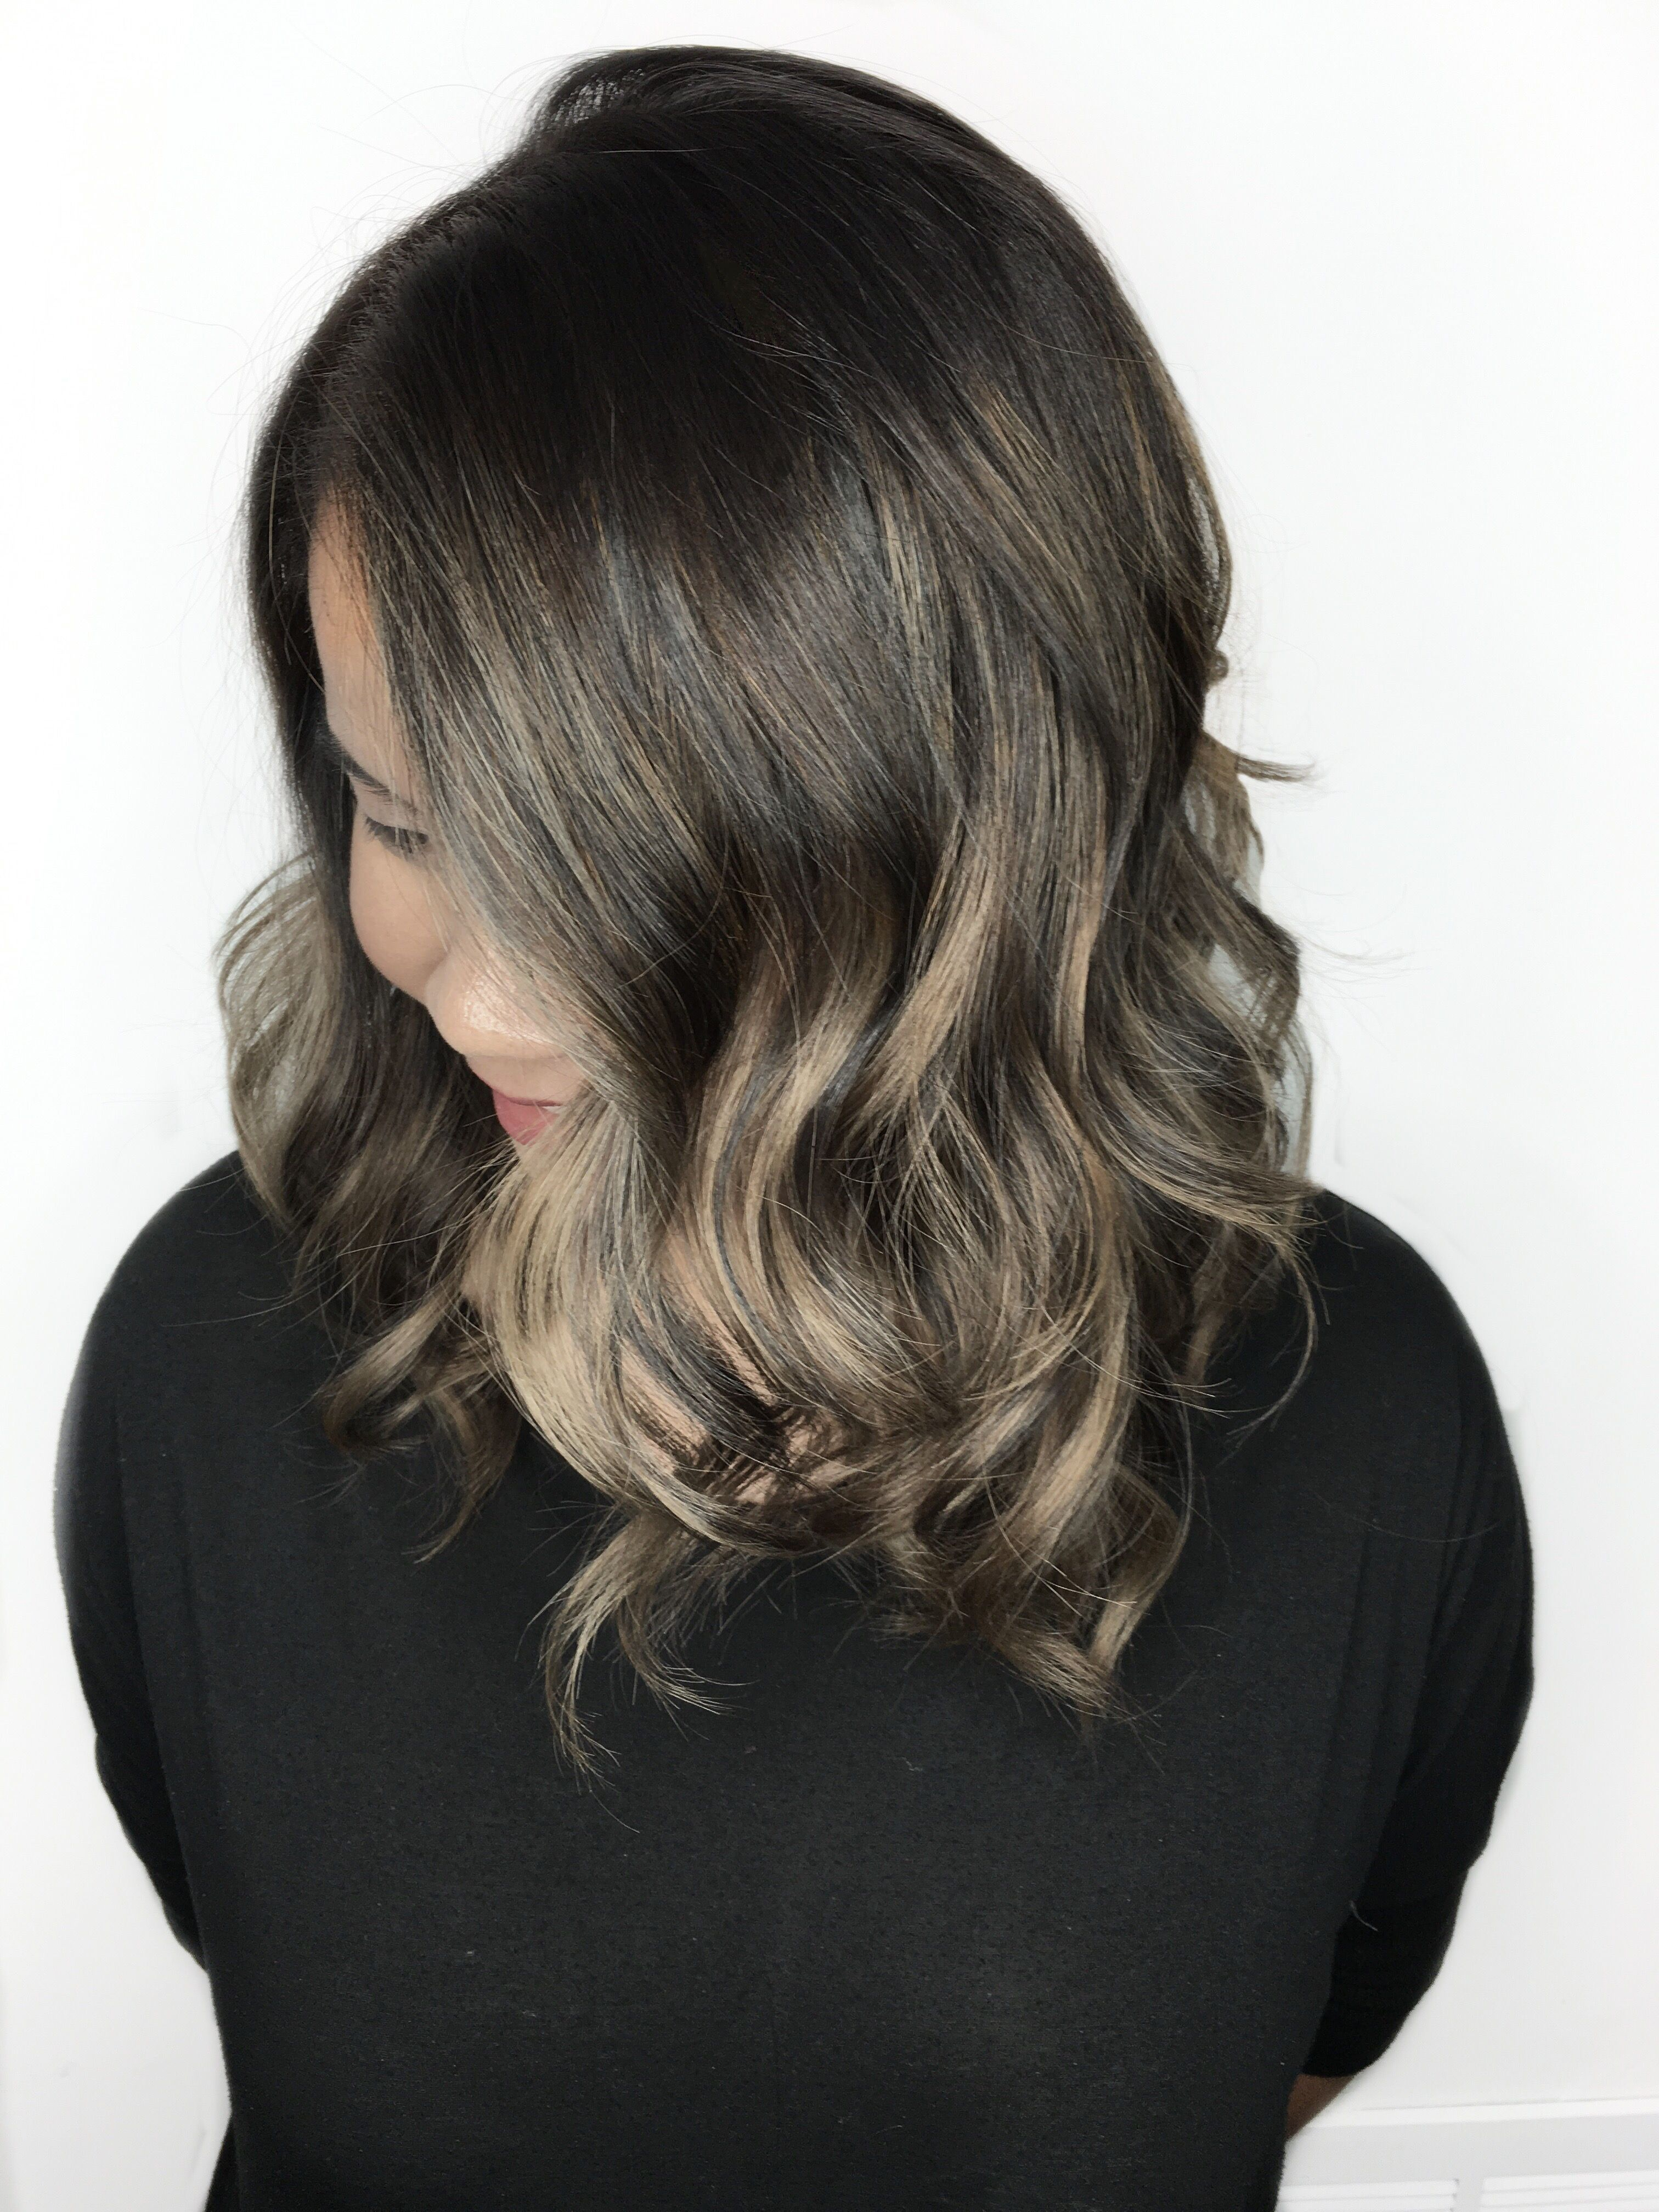 Pin On Hair Loft Cut And Color By Staci